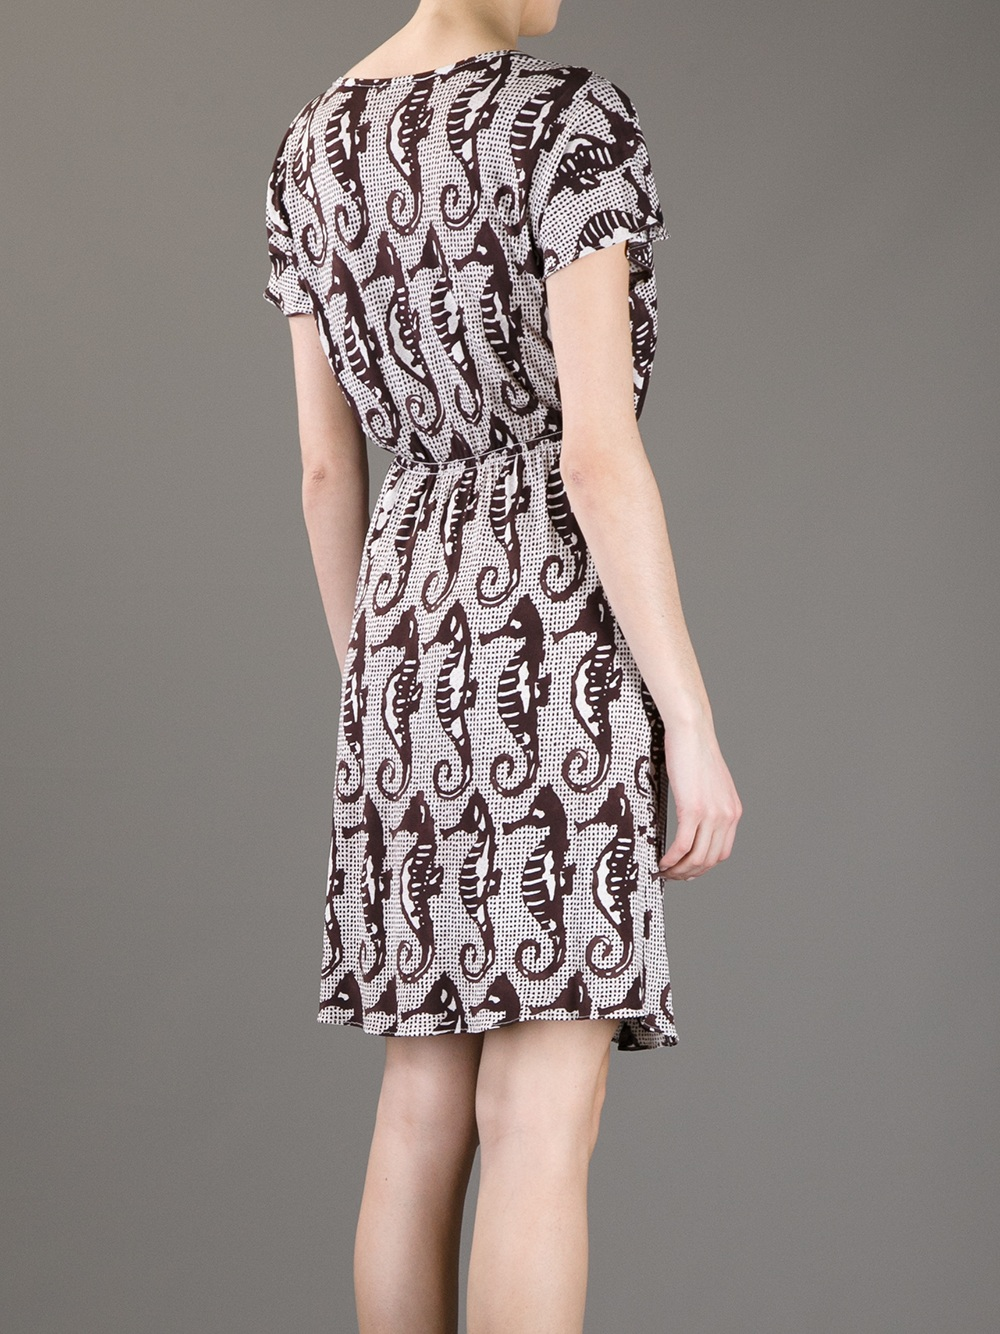 Boutique Moschino Seahorse Dress In Brown Lyst